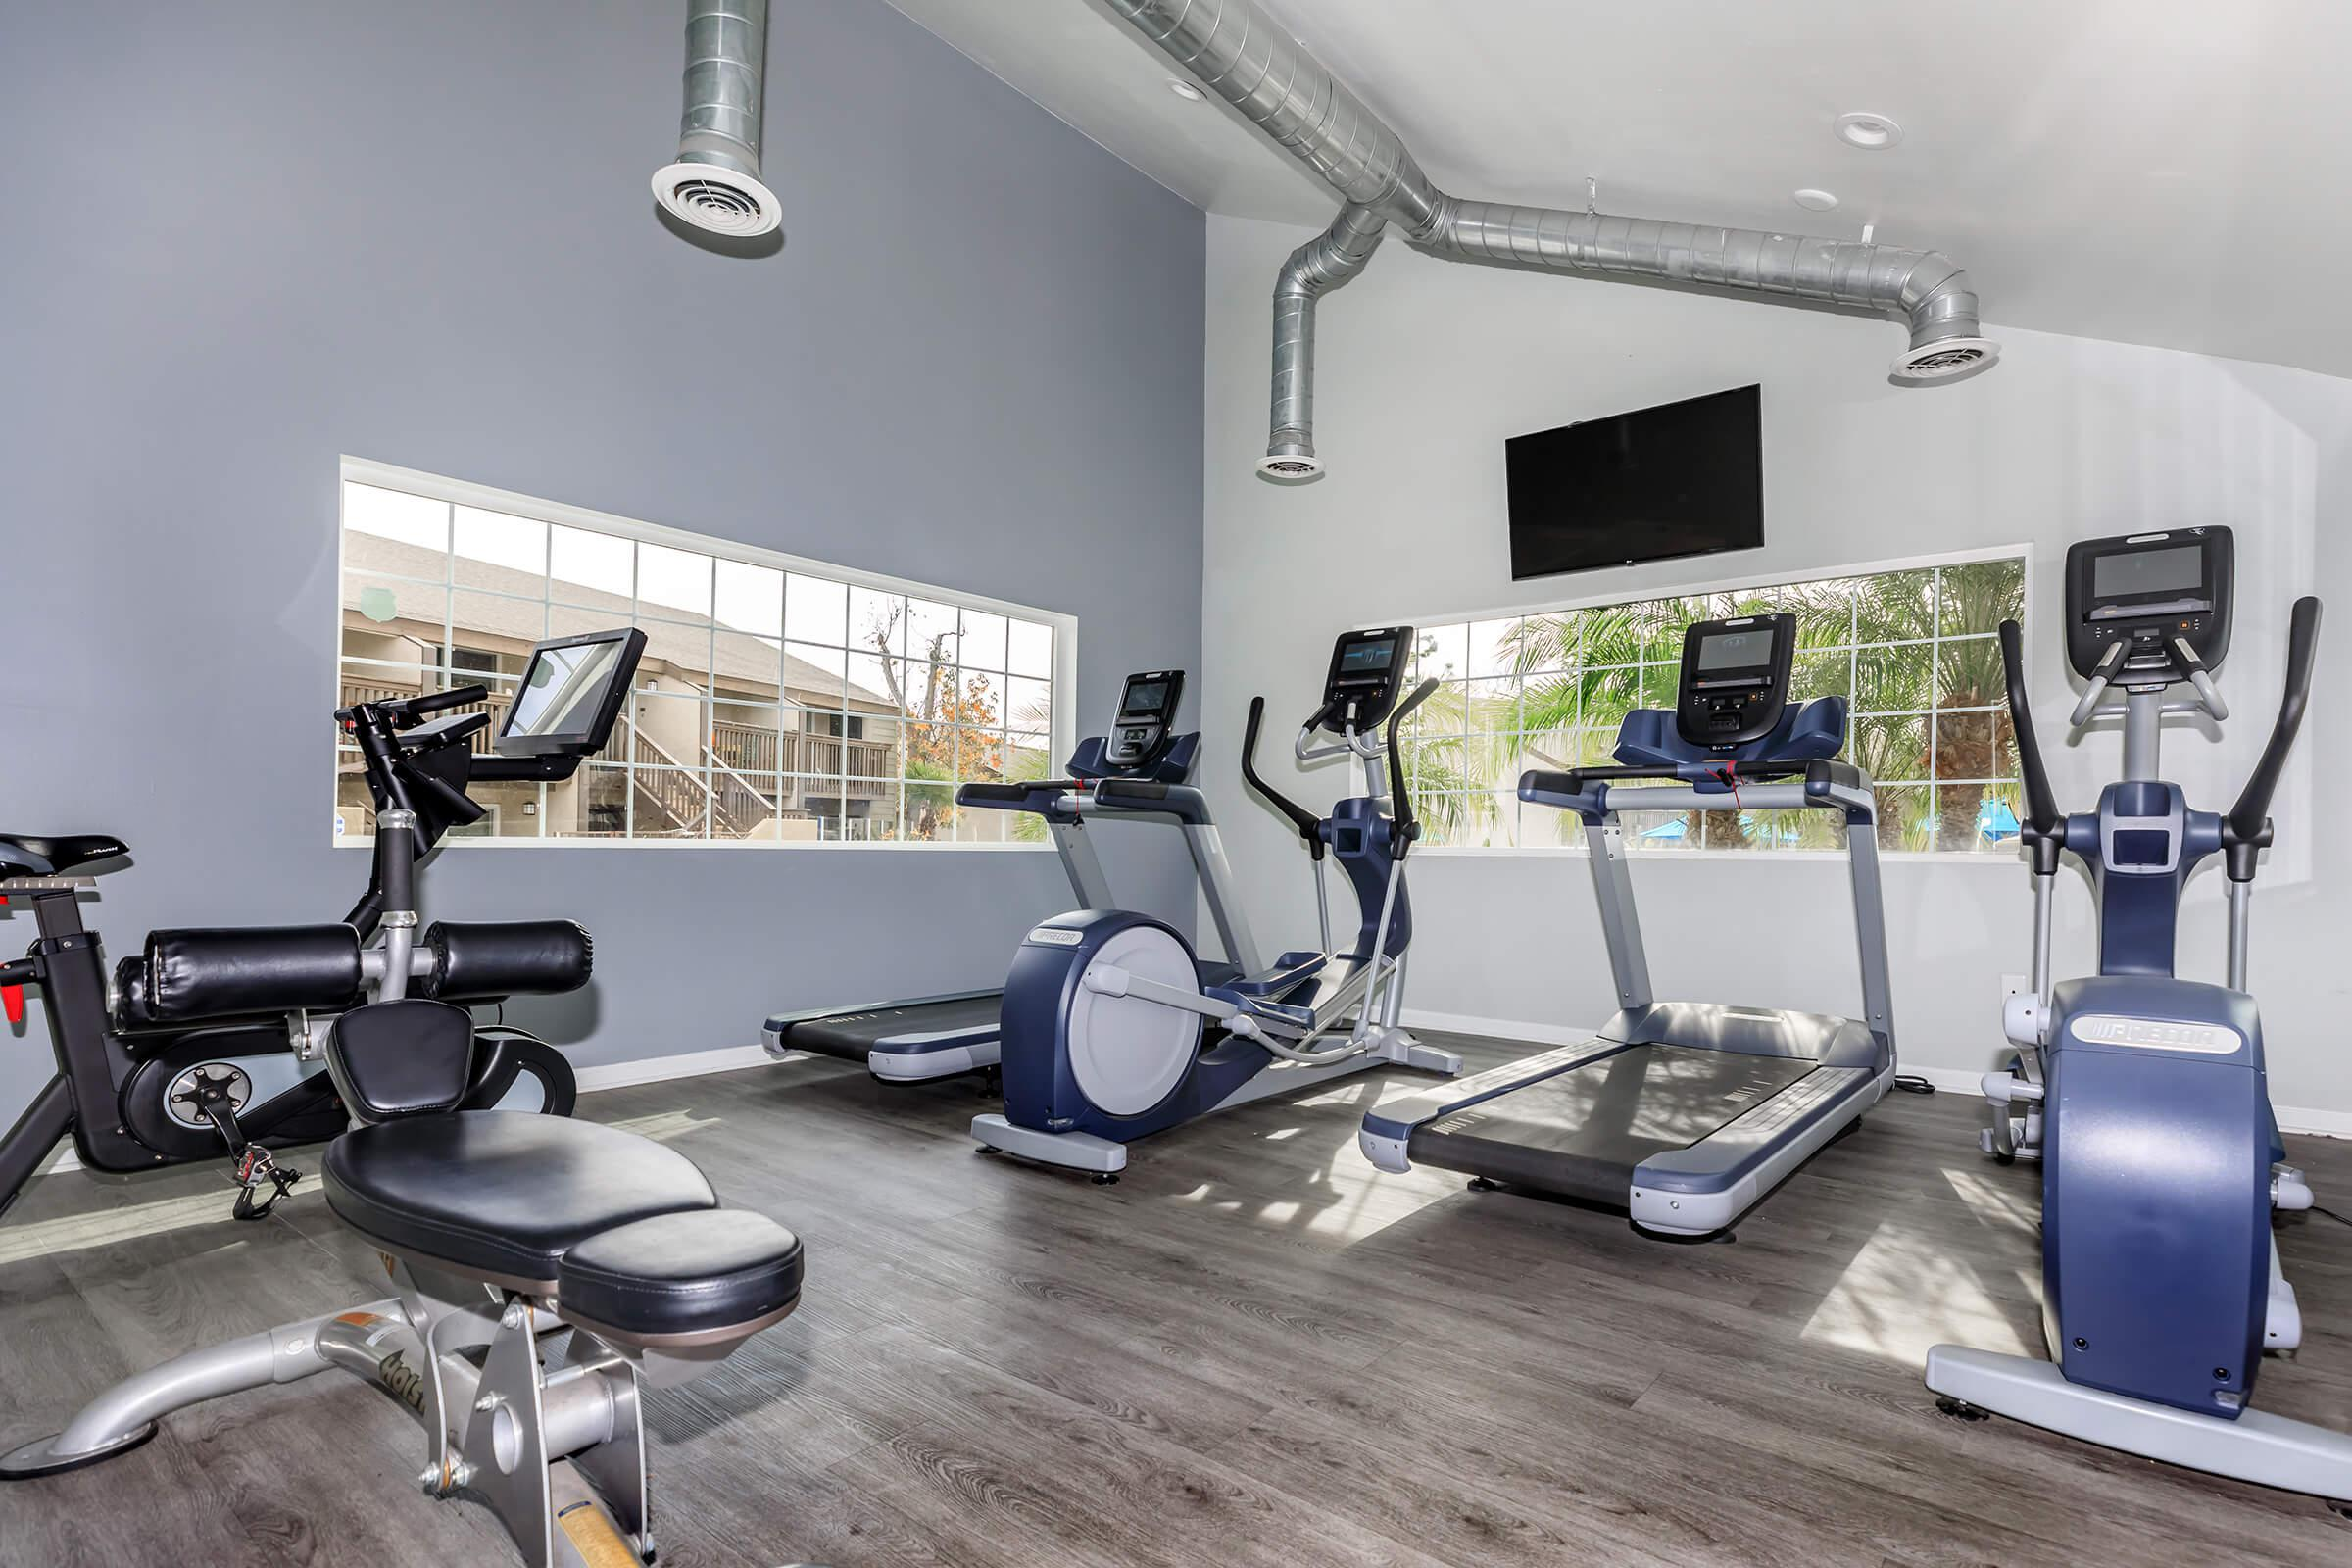 Fitness Center at The Lake in Fullerton, CA